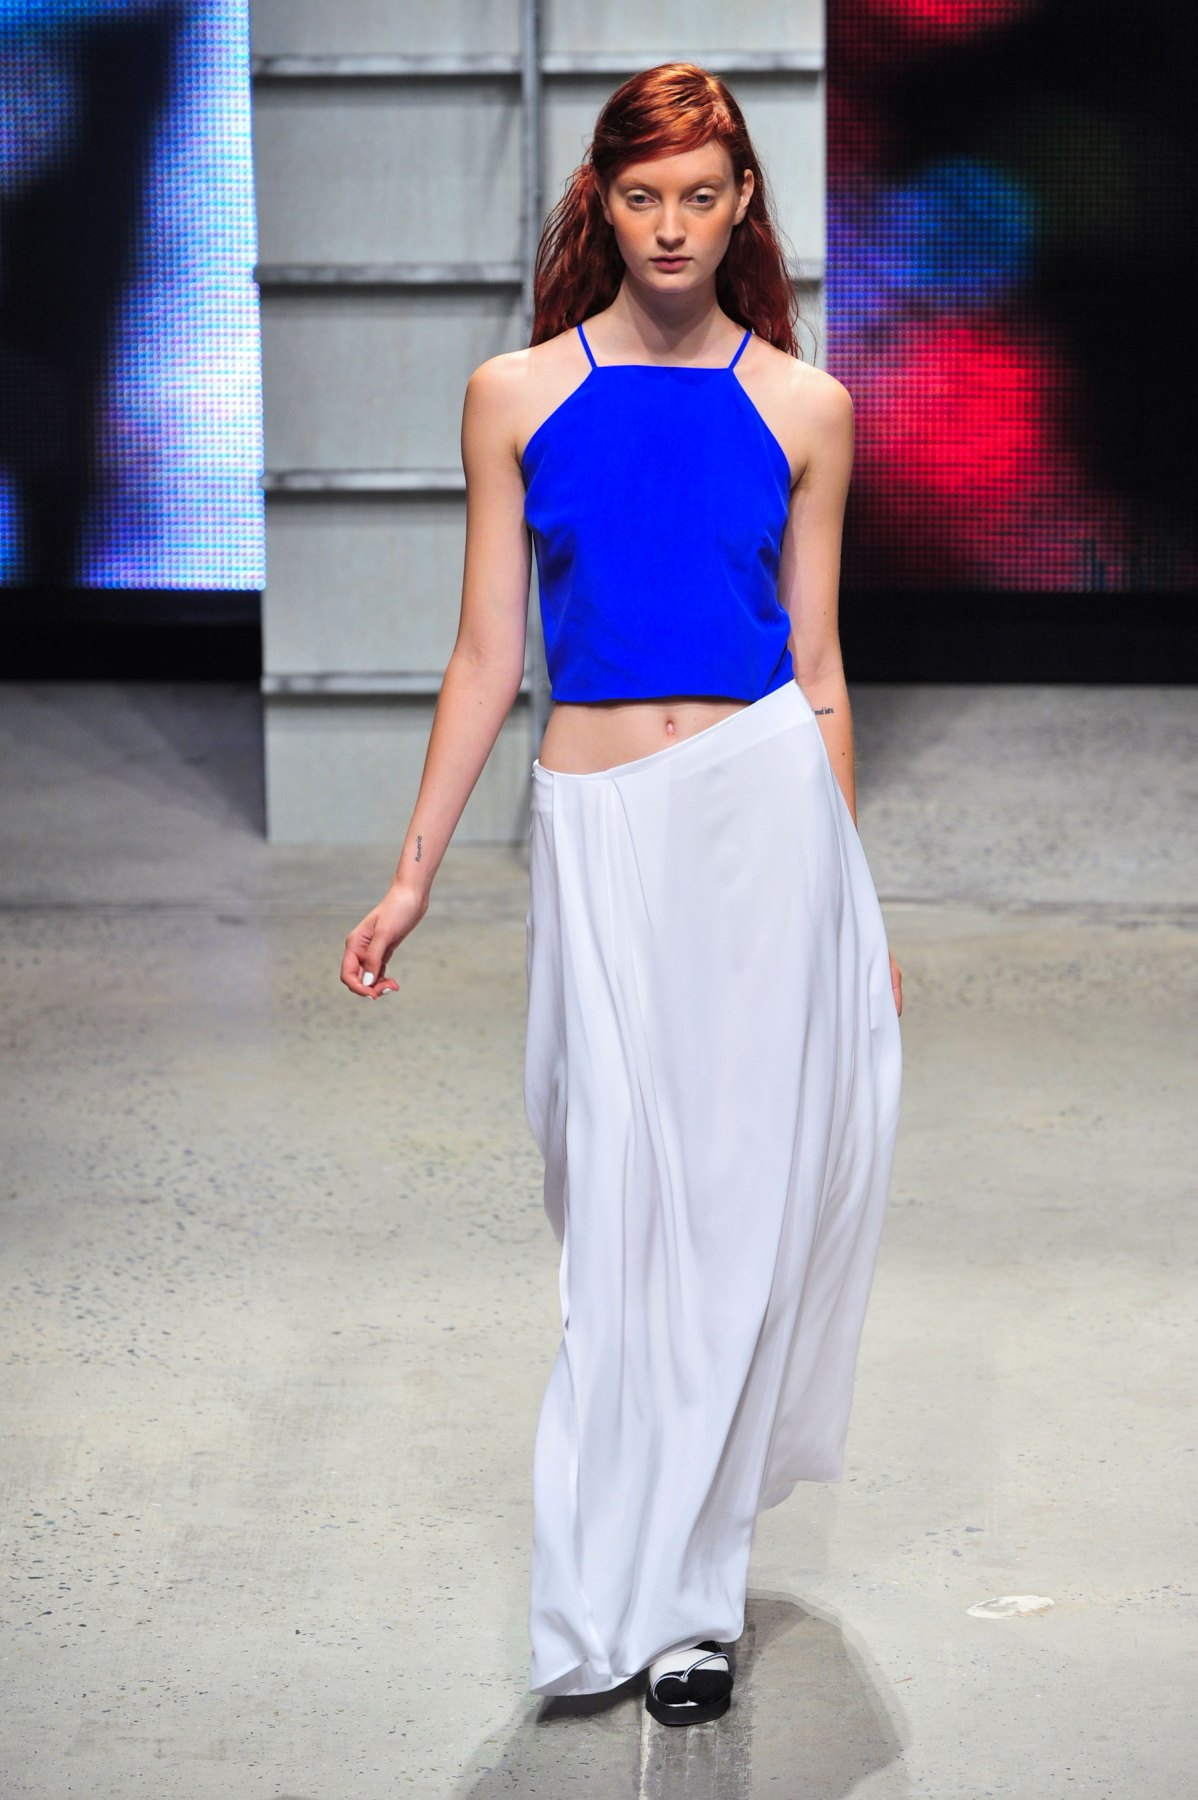 desfile-band-of-outsiders-nova-york-verao-2014-035